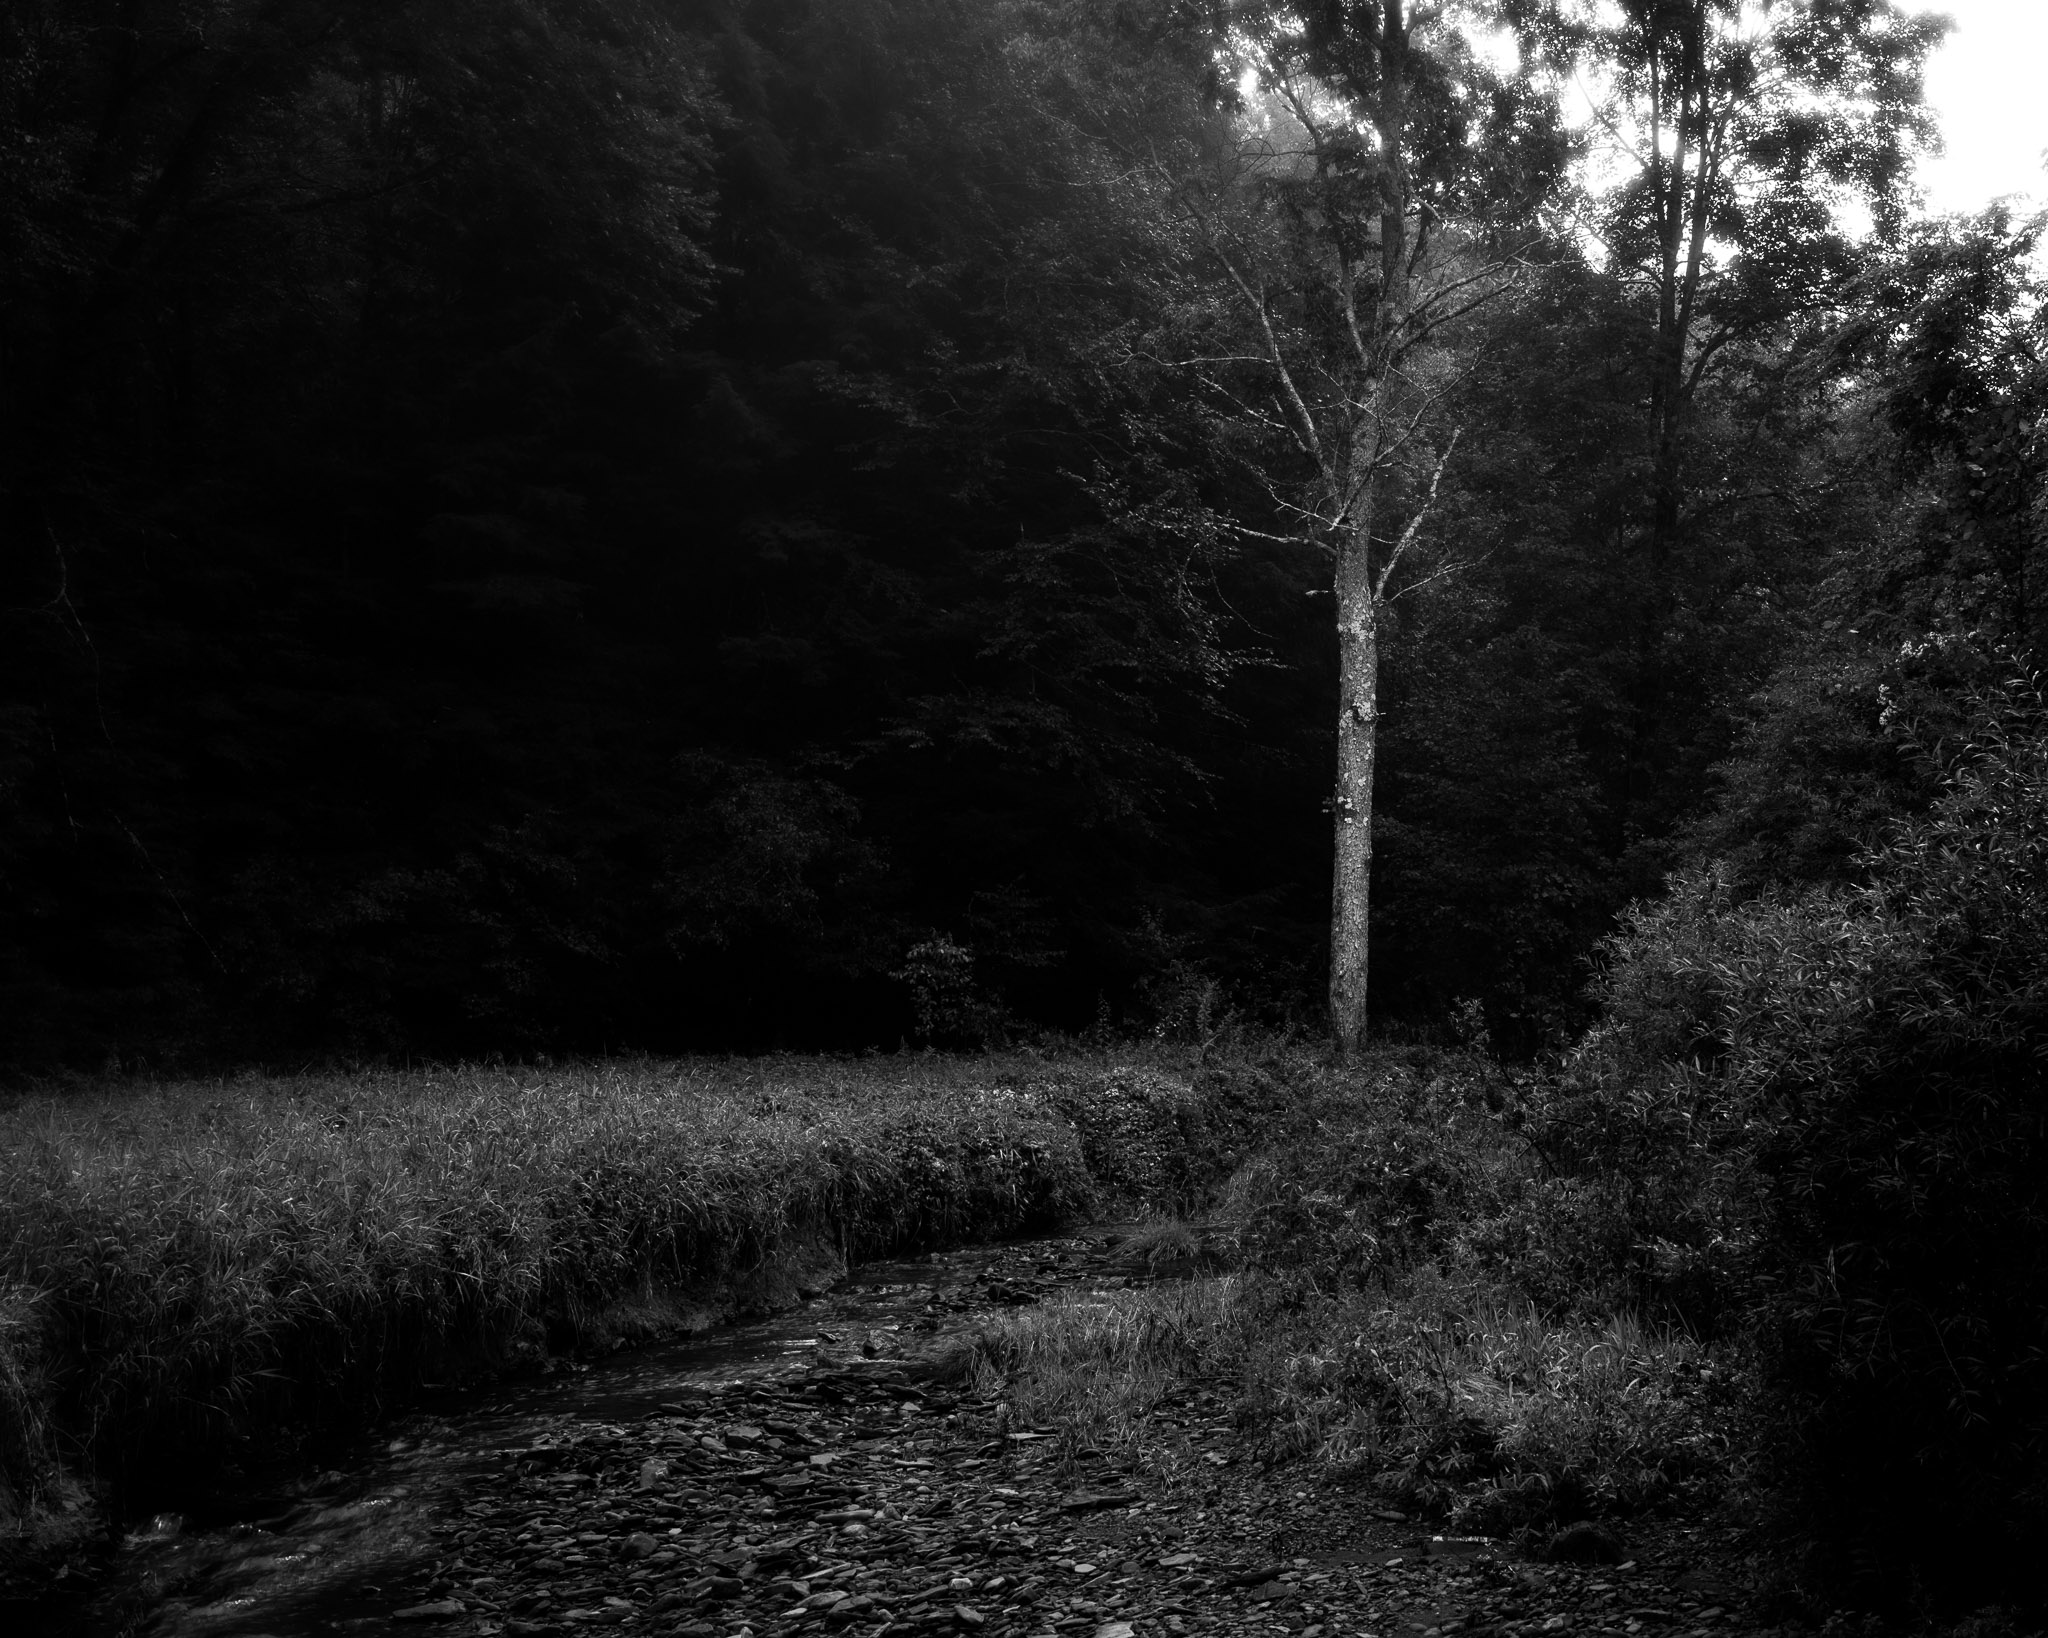 A high-contrast black and white photograph taken by fine artist Cody Schultz while exploring a state park in northern Pennsylvania back in August of 2017. This photograph highlights a tree standing apart from the rest of the forest behind it, a strong ray of light bringing it out amongst the blackened forest behind it.